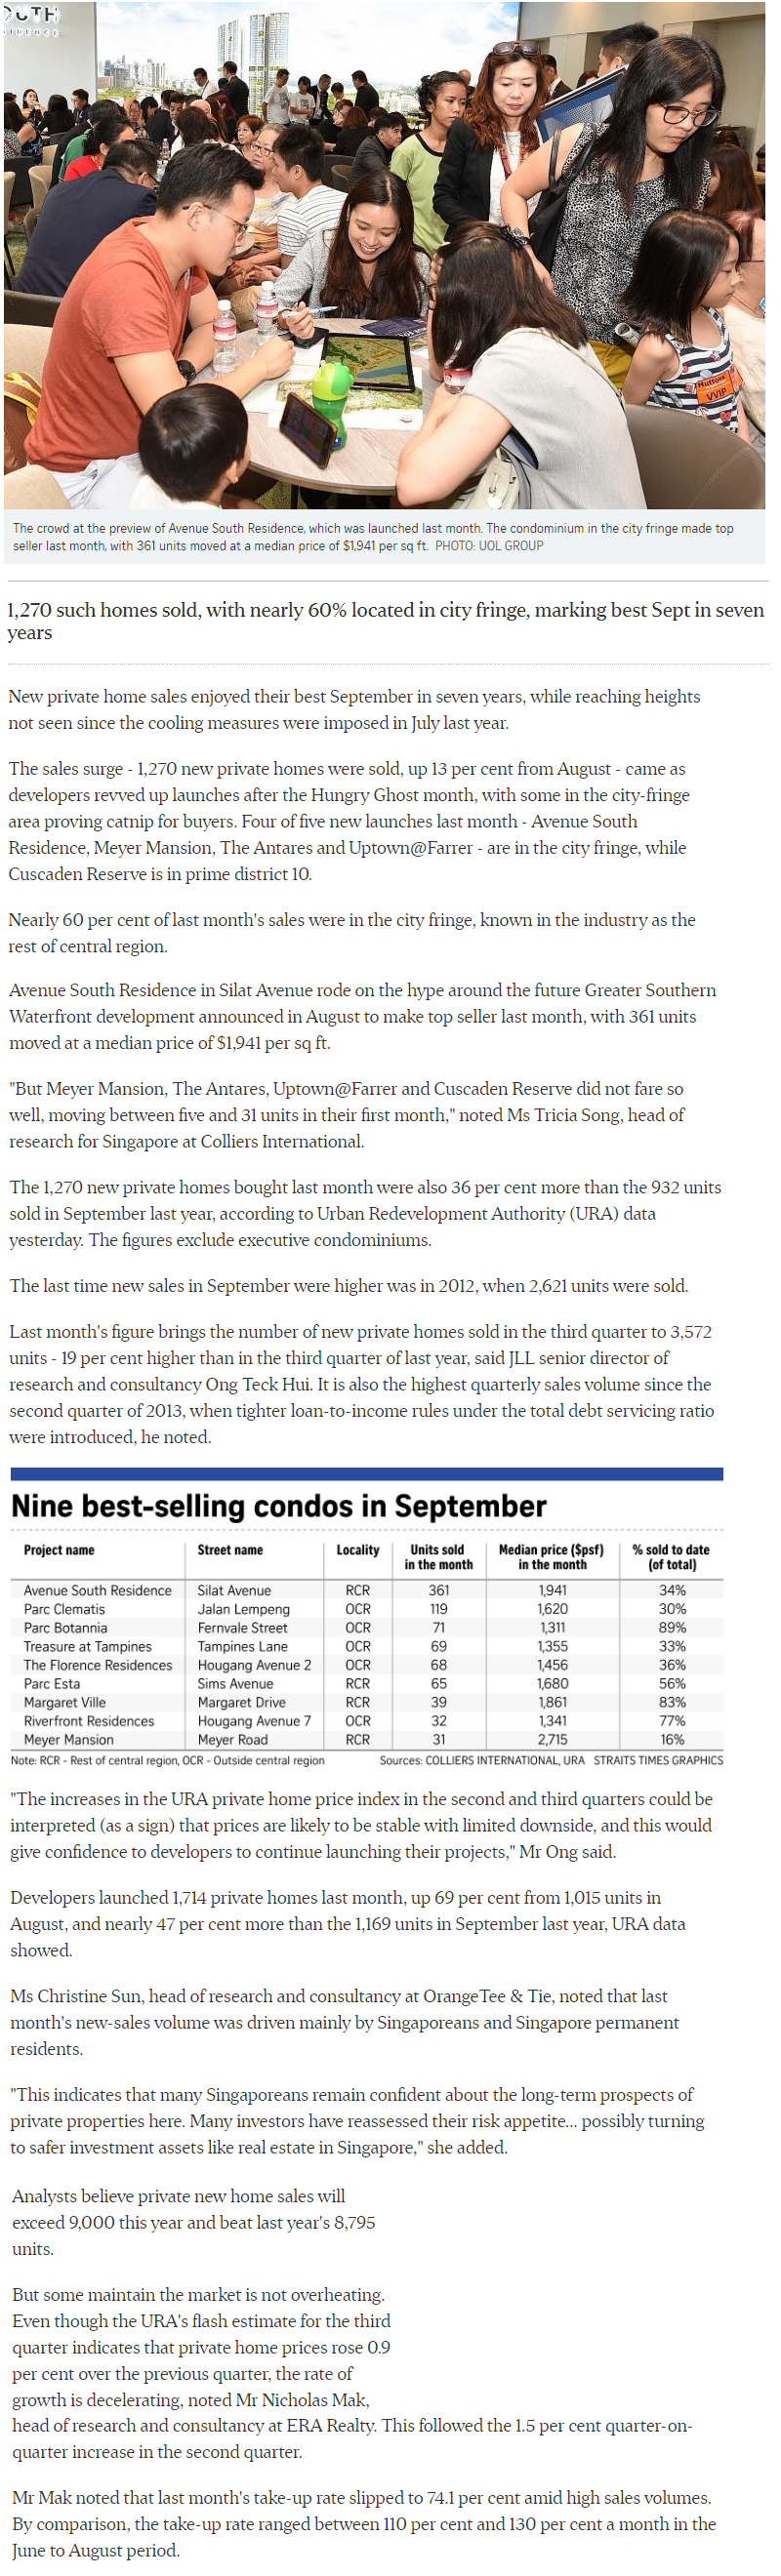 Peak Residence - New private Home Sales Hit A Hight In September